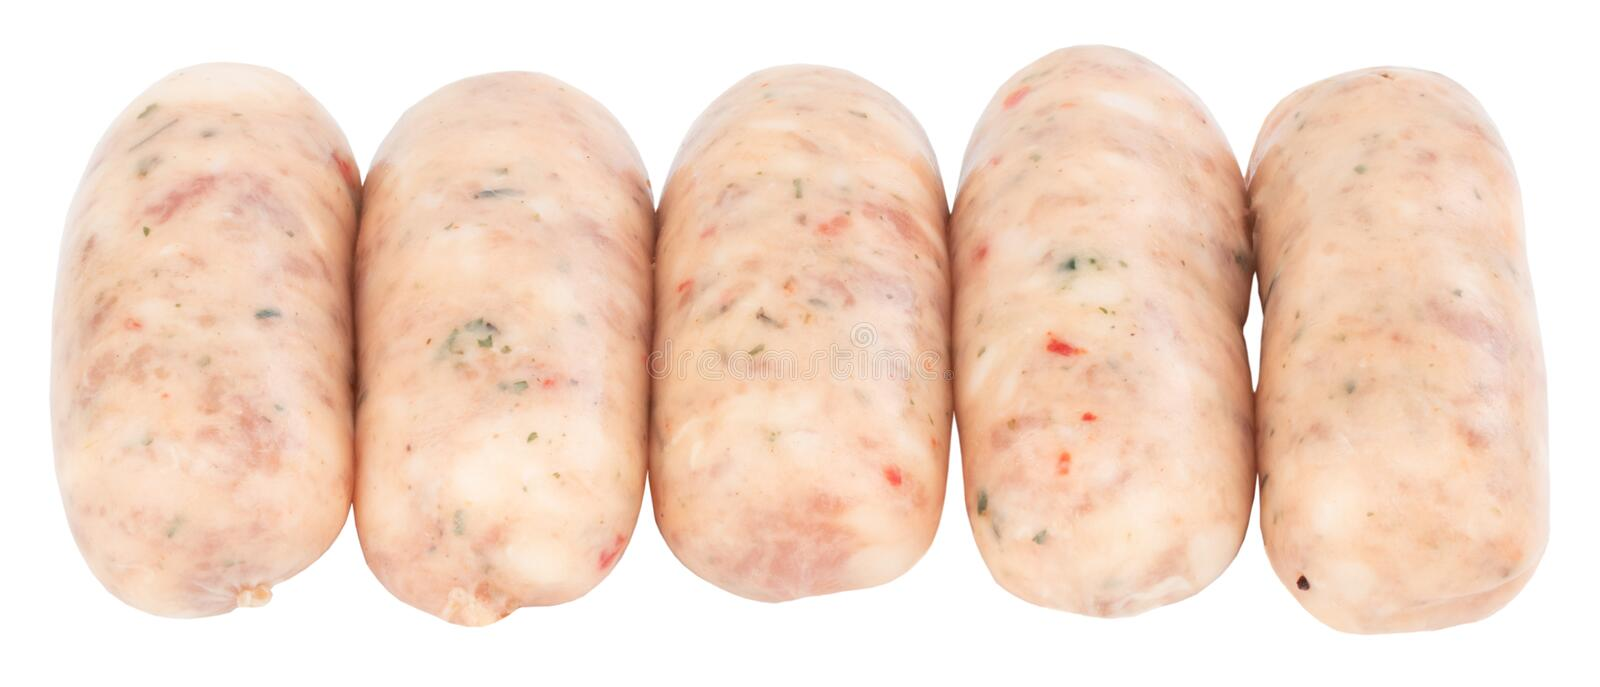 Raw pork sausages isolated on white background with clipping path.  stock photos